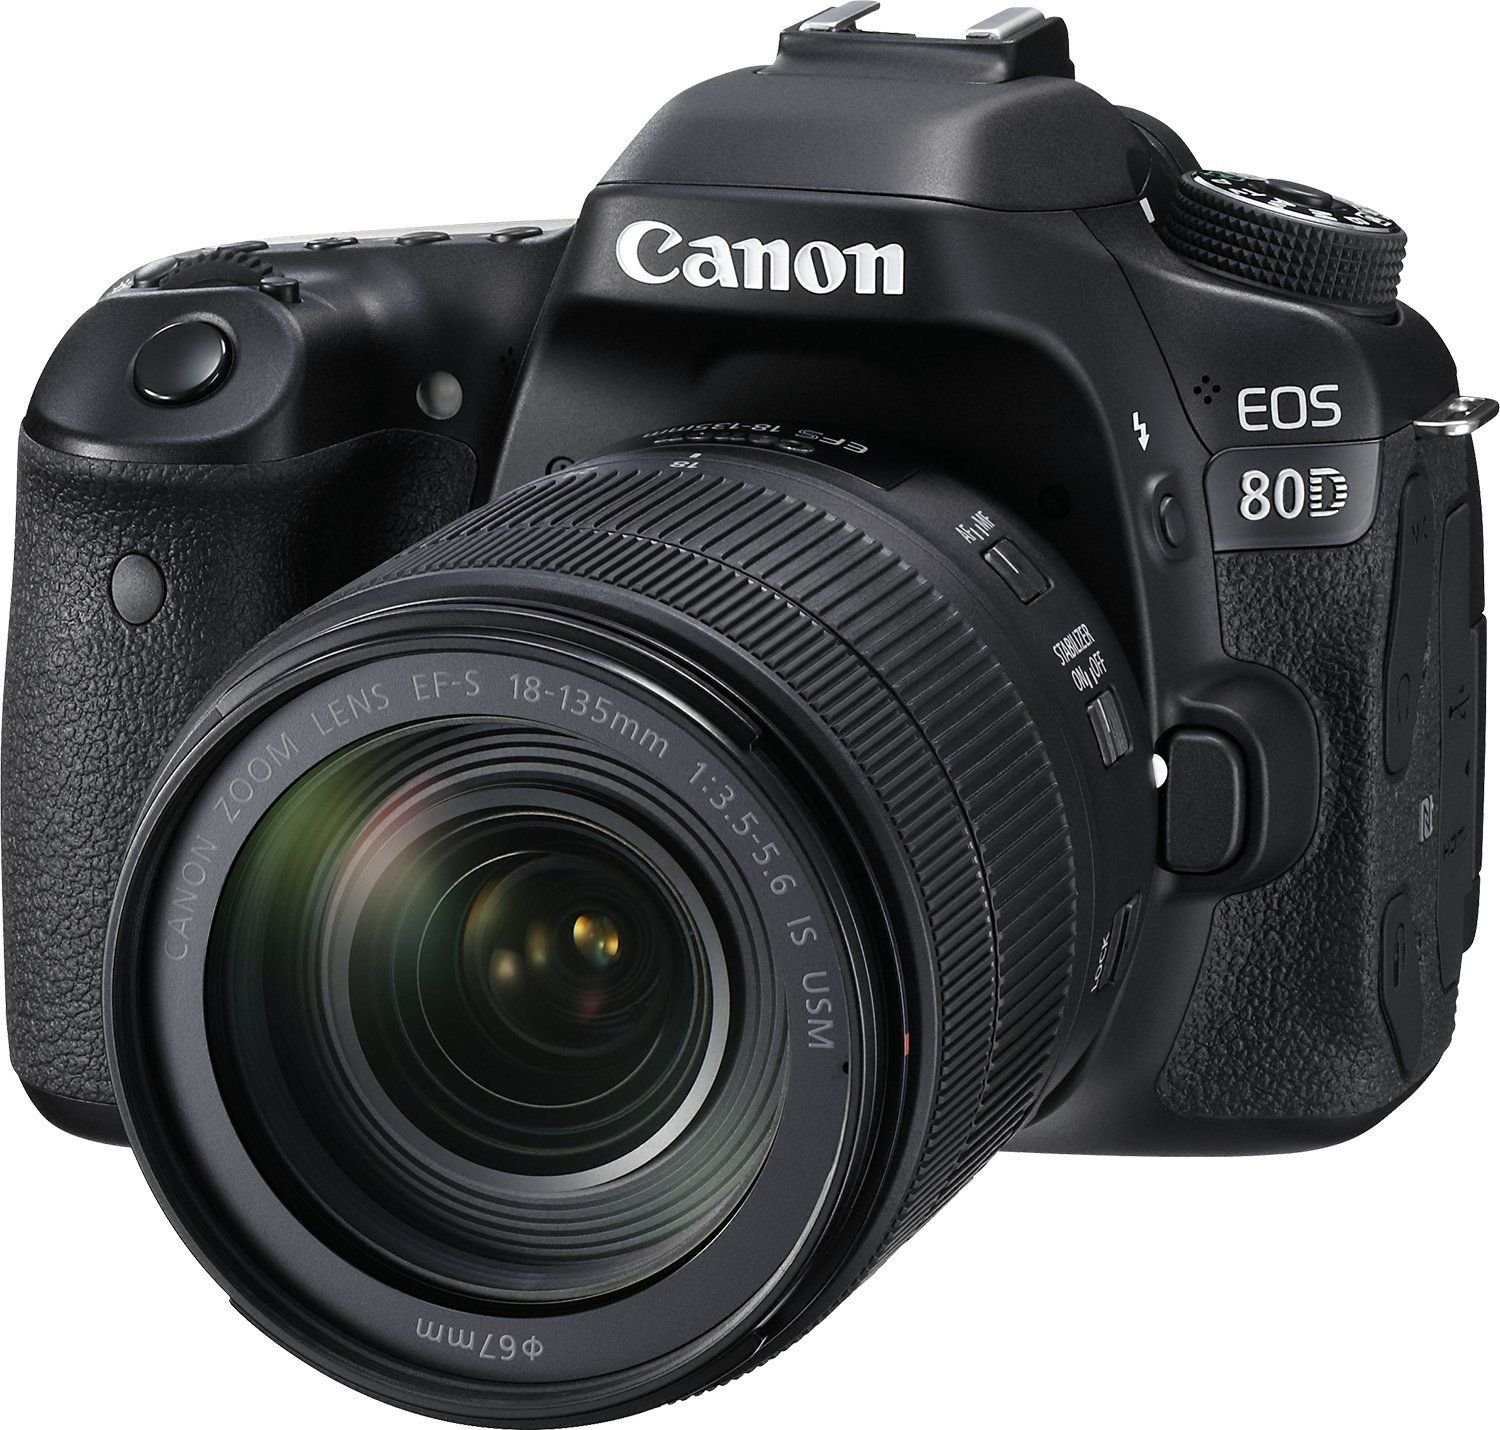 Canon EOS 80D Digital SLR Camera with EF-S 18-135mm IS USM (Black) 19PC Professional Bundle